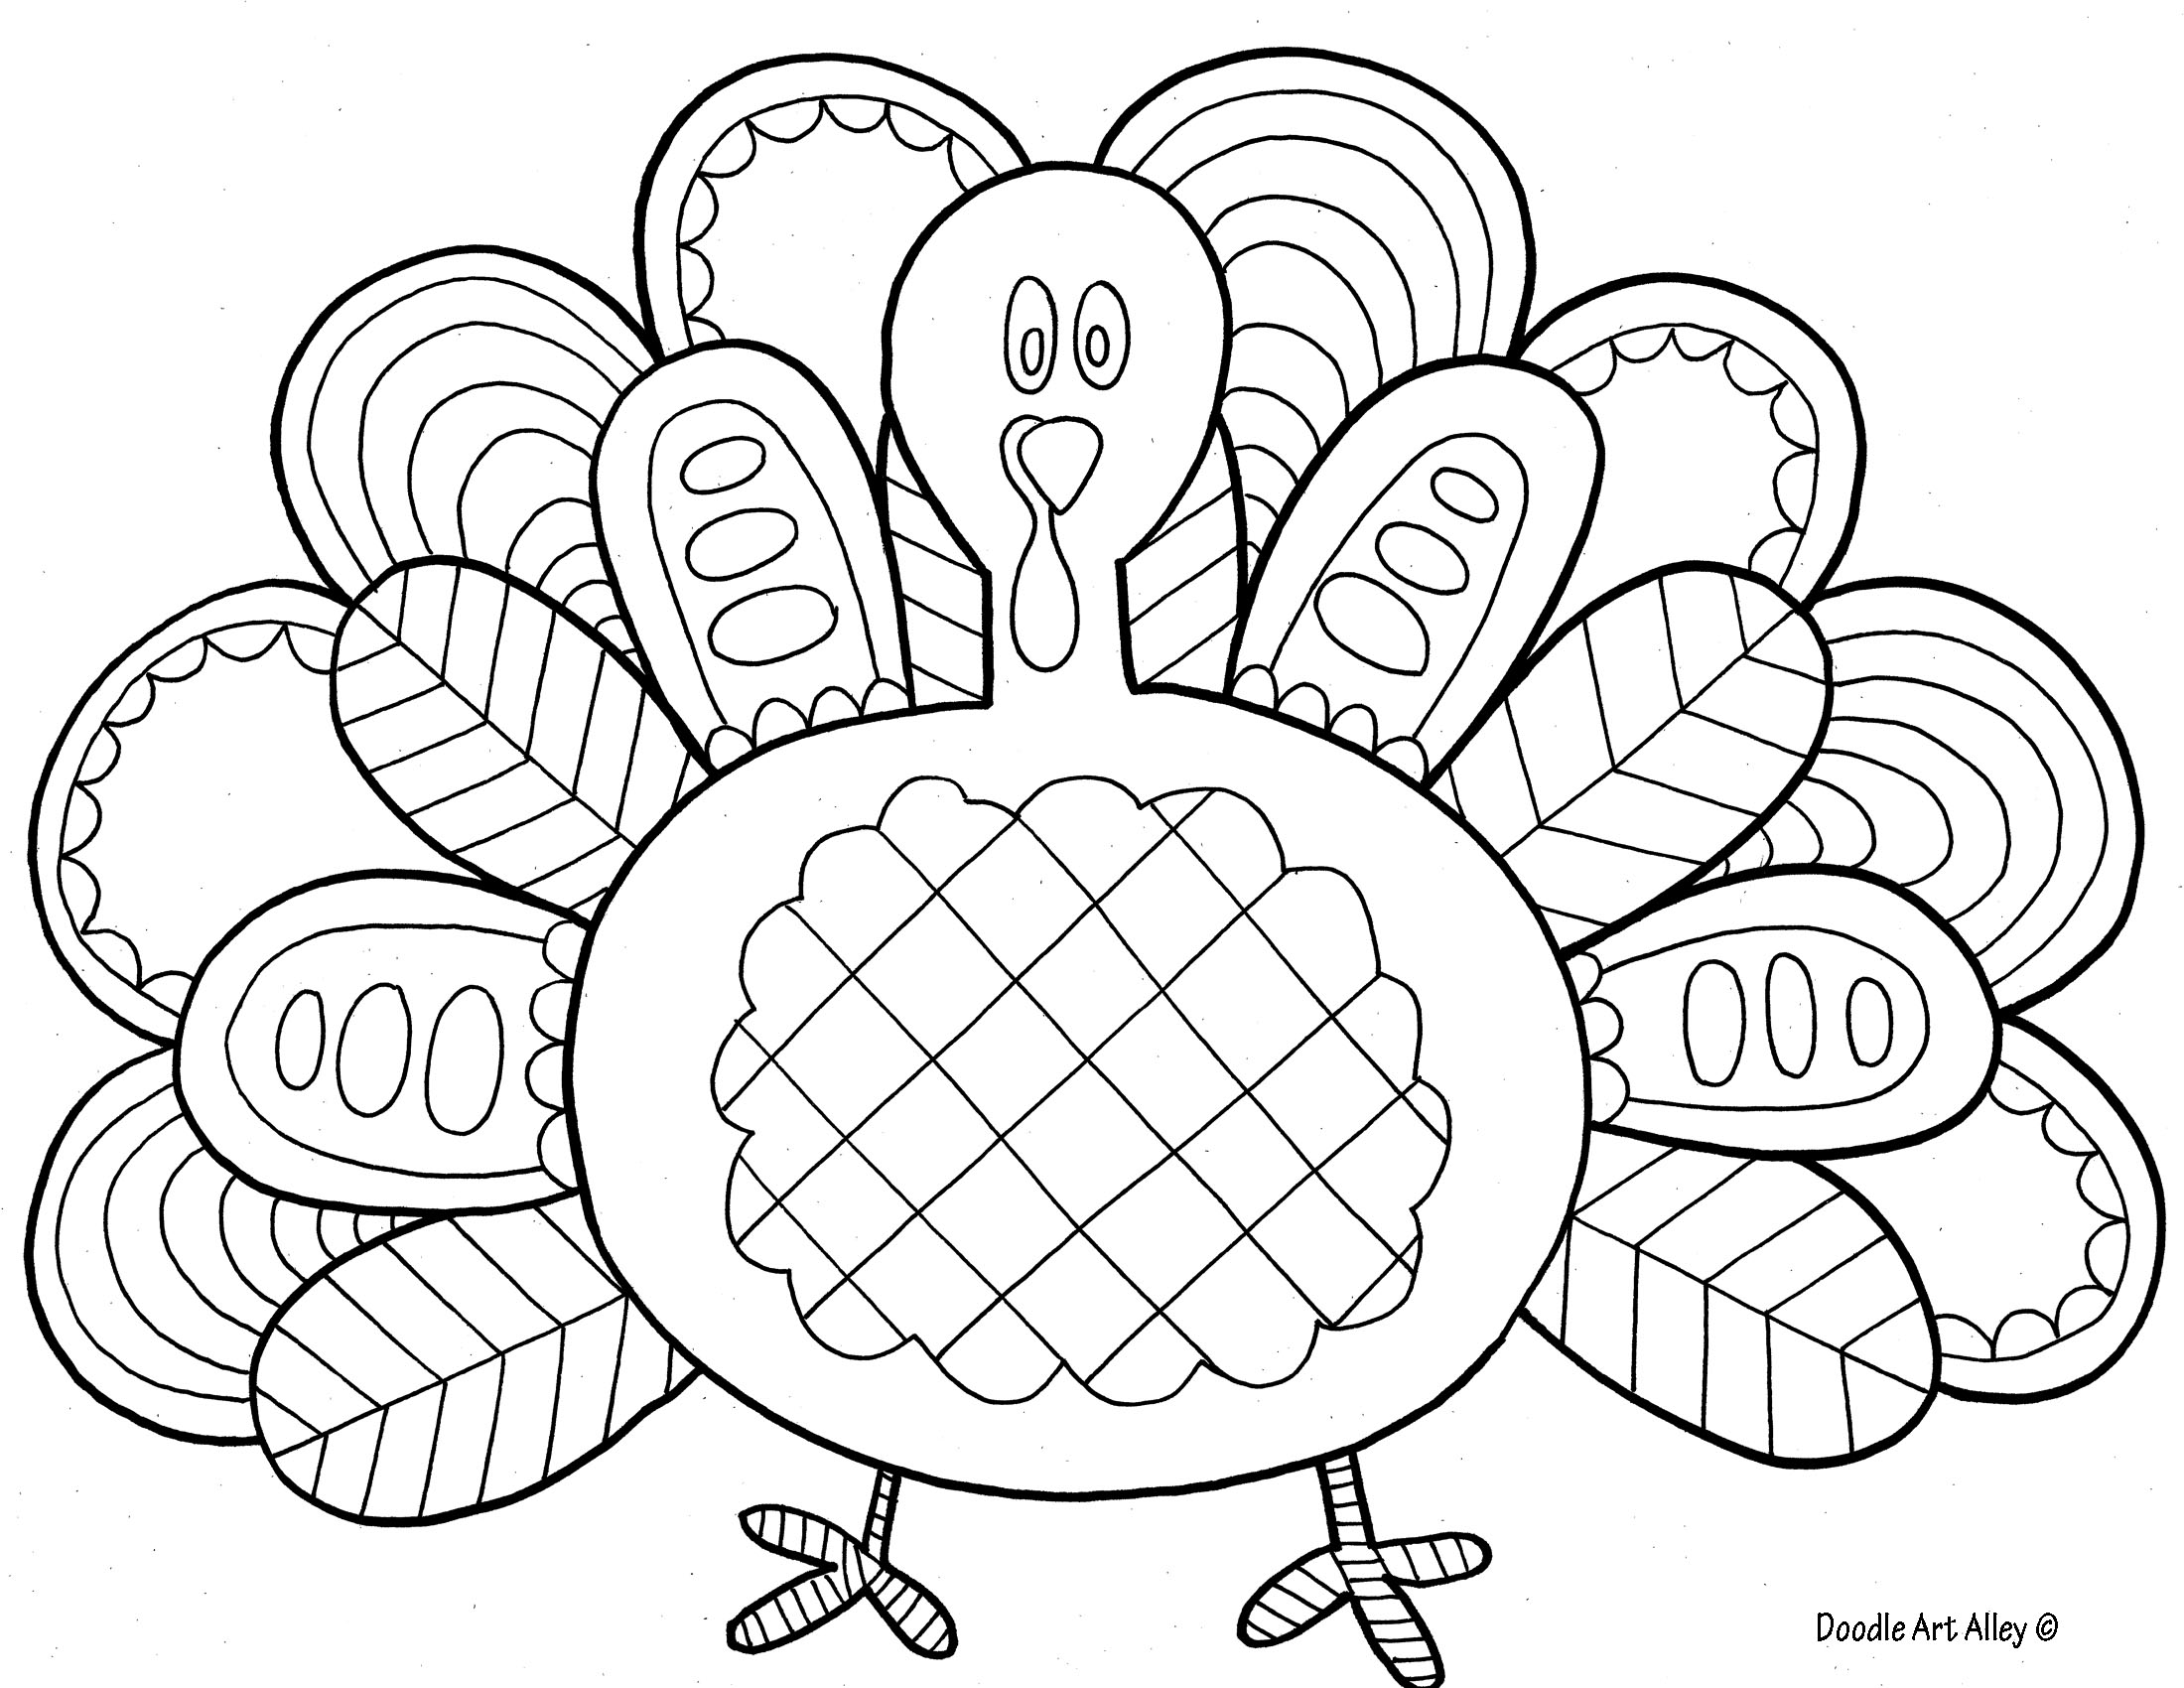 16 Free Thanksgiving Coloring Pages for Kids& Toddlers ⋆ Simply